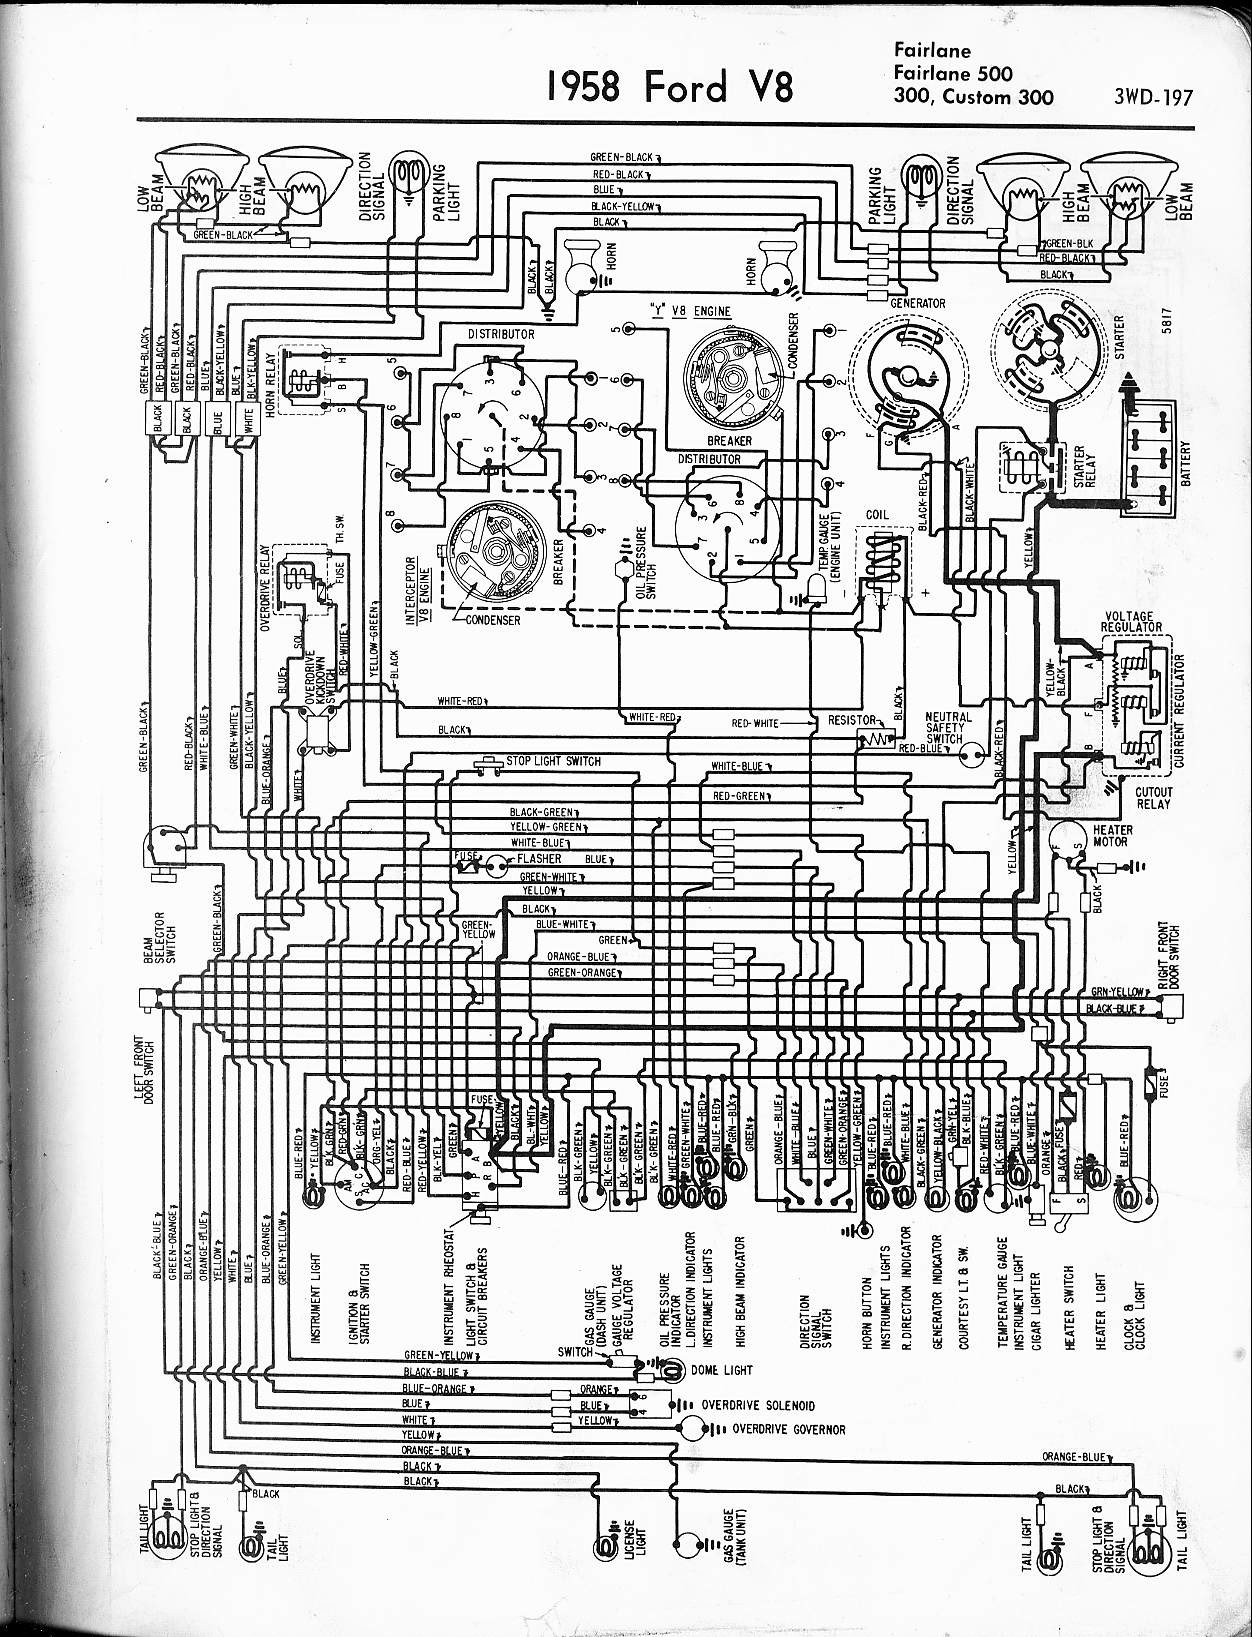 Ford Truck Wiring Diagrams Free F150 Harness Further 1970 57 Diagram 65 Of